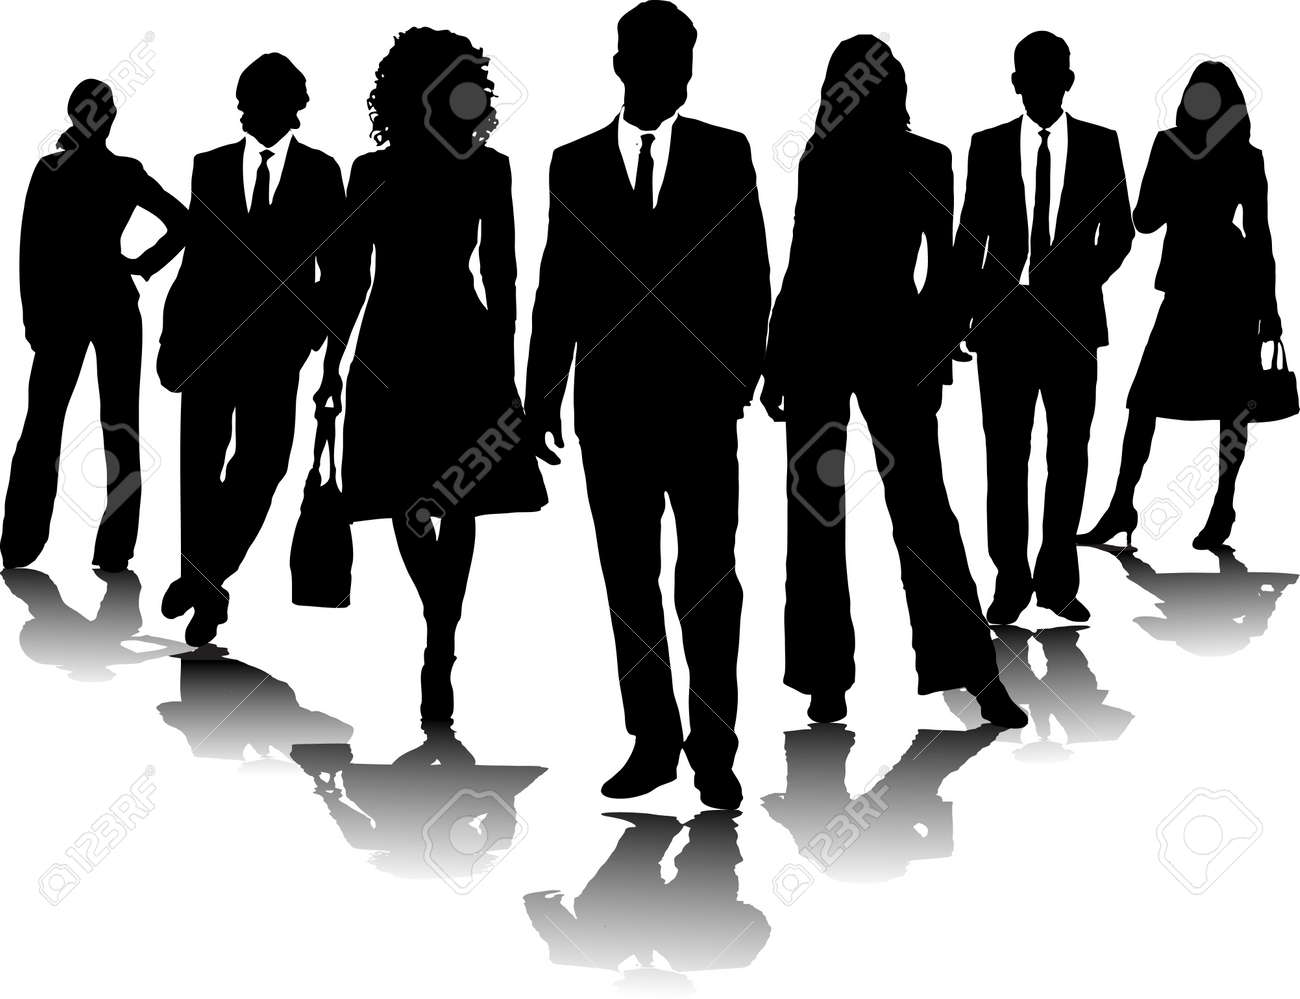 7 office people in black and white in a arrow formation Stock Photo - 782260